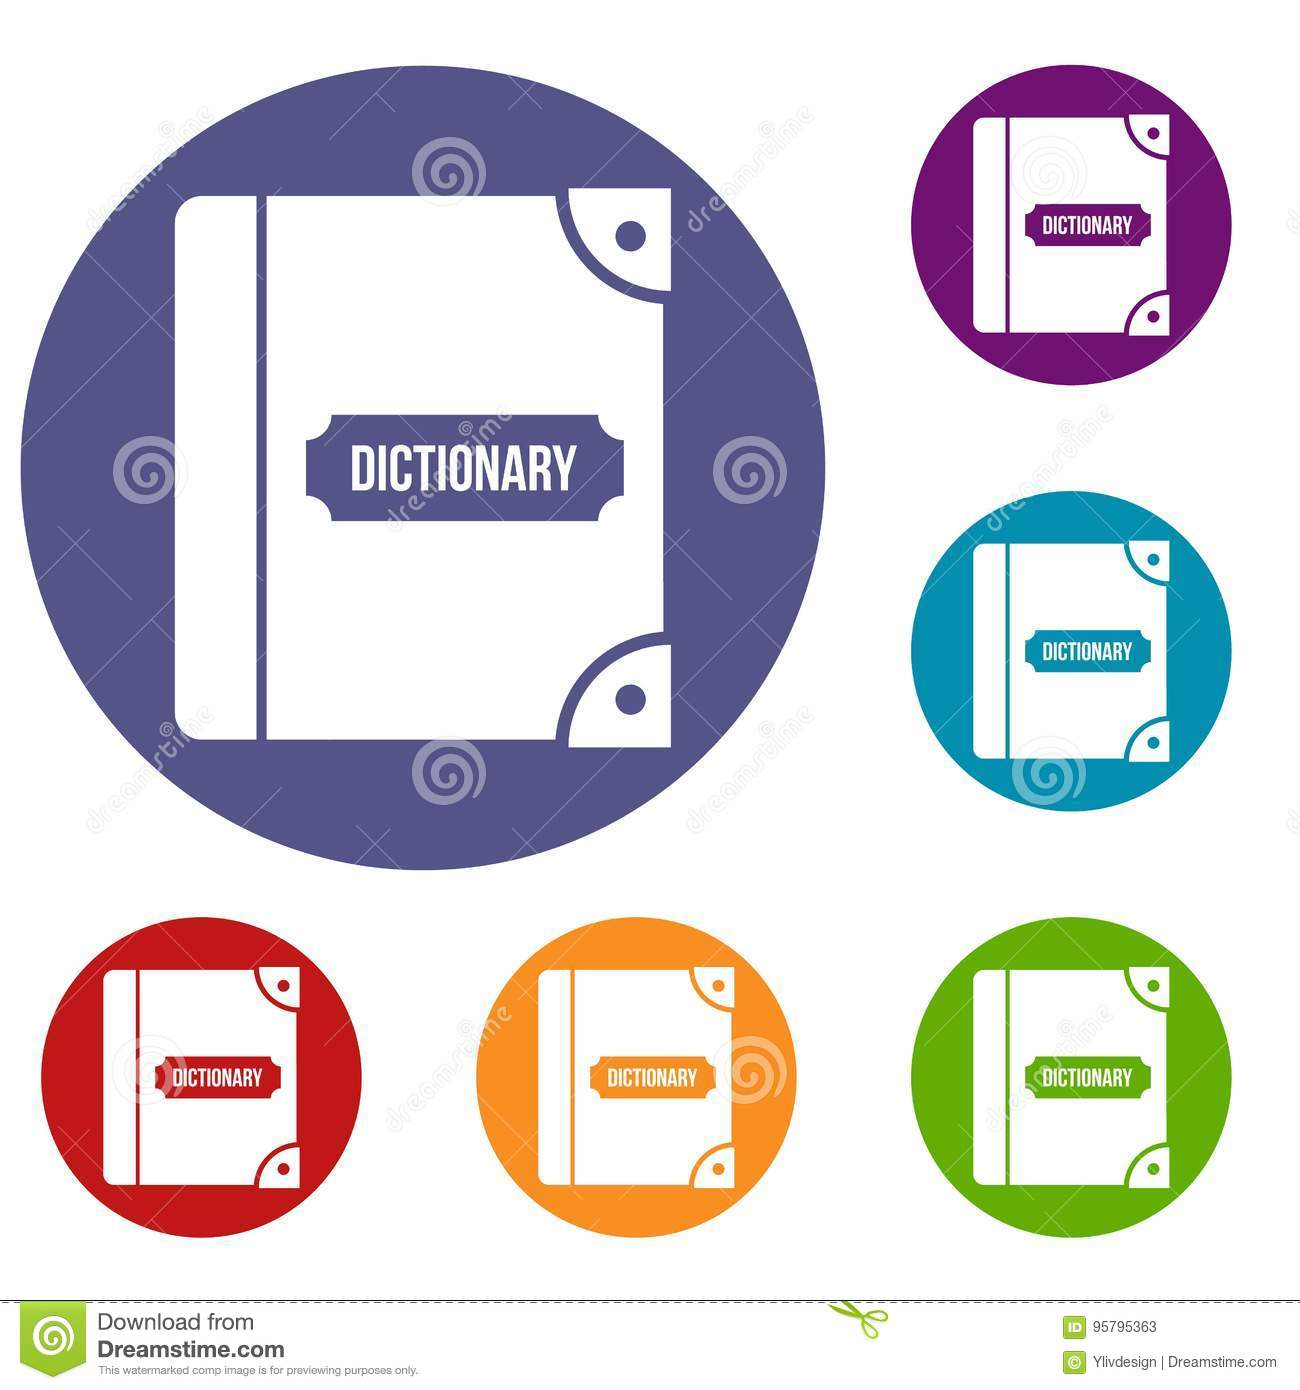 English dictionary icons set stock vector illustration of download comp ccuart Choice Image